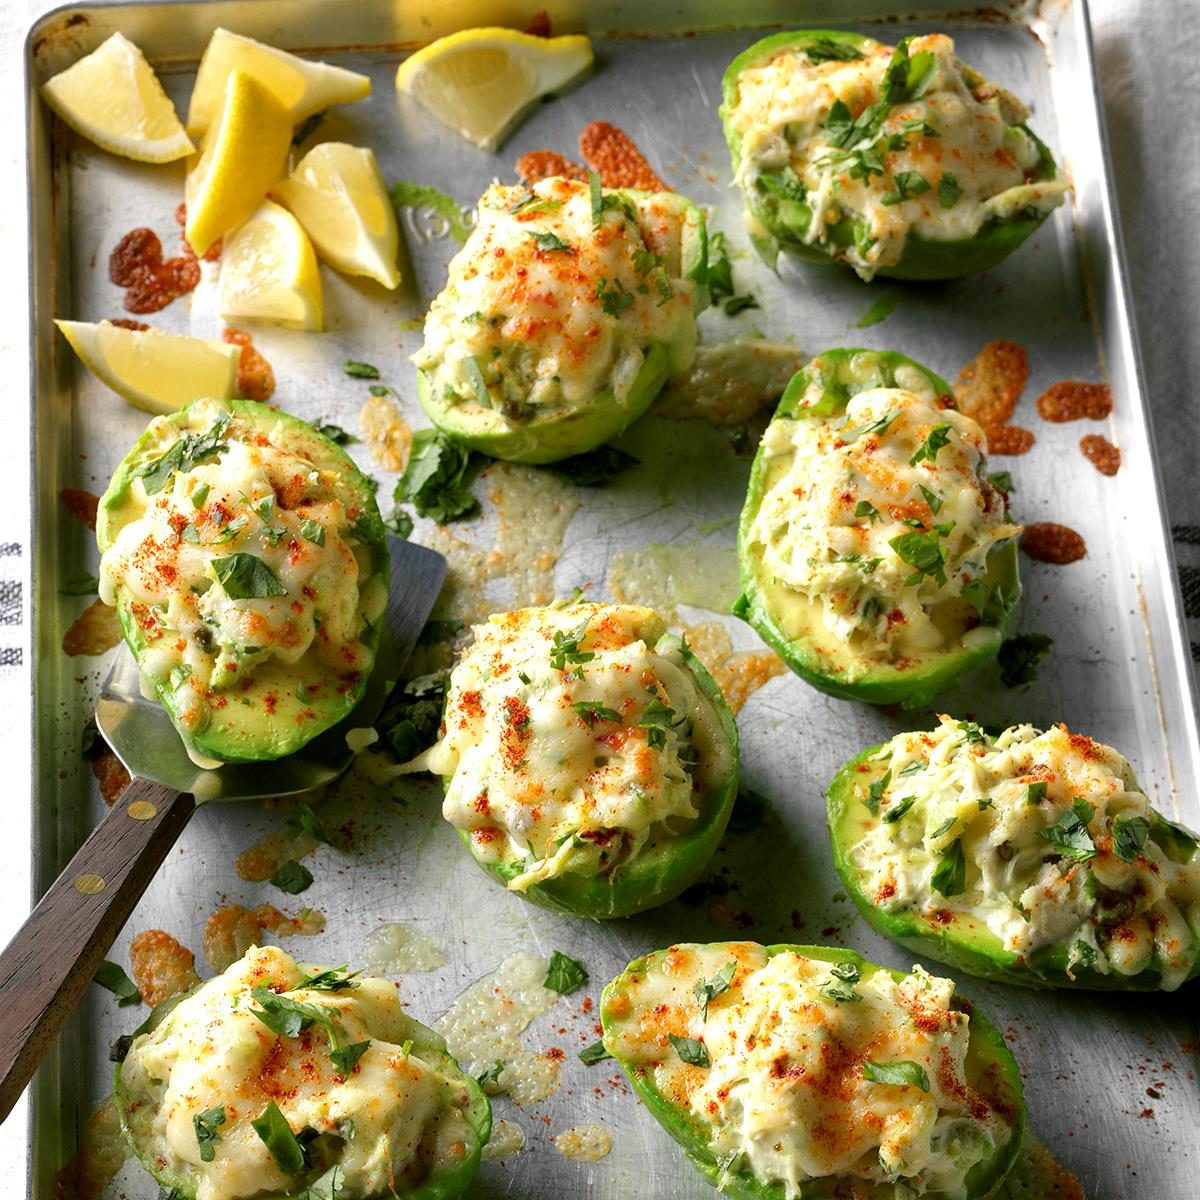 50 Amazing Avocado Recipes You Need To Try